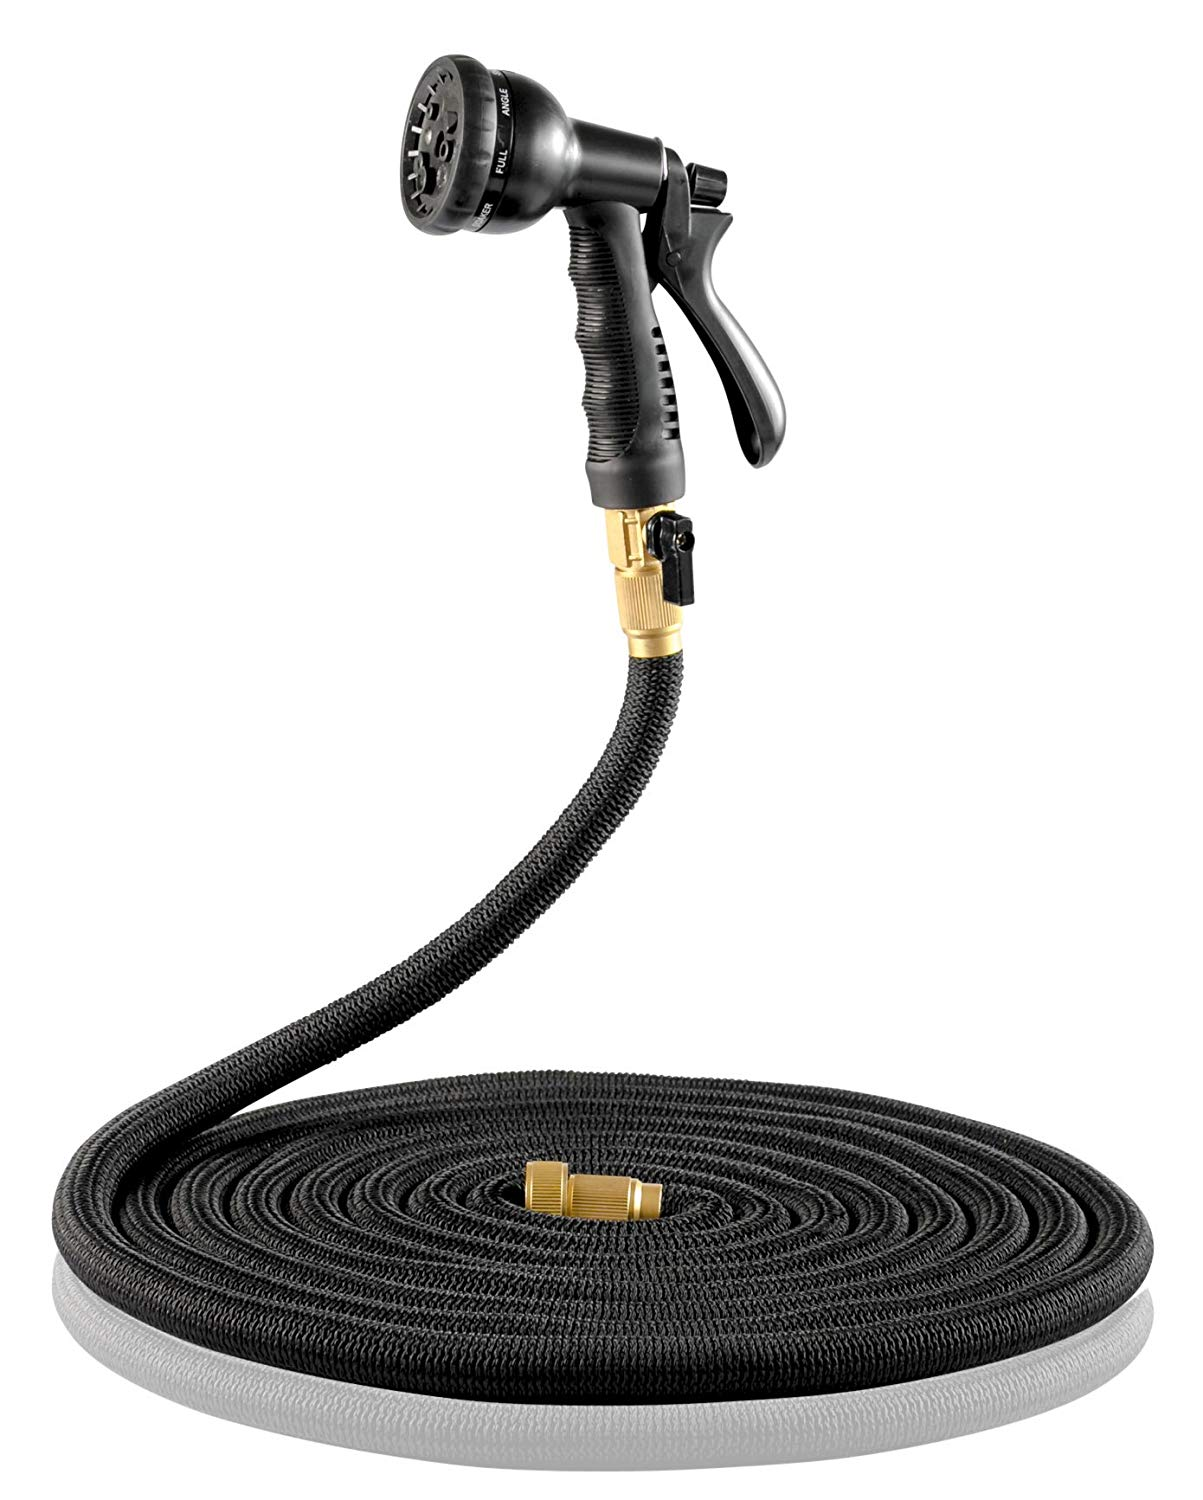 ALL NEW & IMPROVED Expandable Garden Hose w/ Built in Shut Off Valve (50ft) - FREE Nozzle – Brass Fitting - Heavy Duty Retractable Expanding Hoses - Tangle Free Flexible Shrinking/ Collapsible (Black)